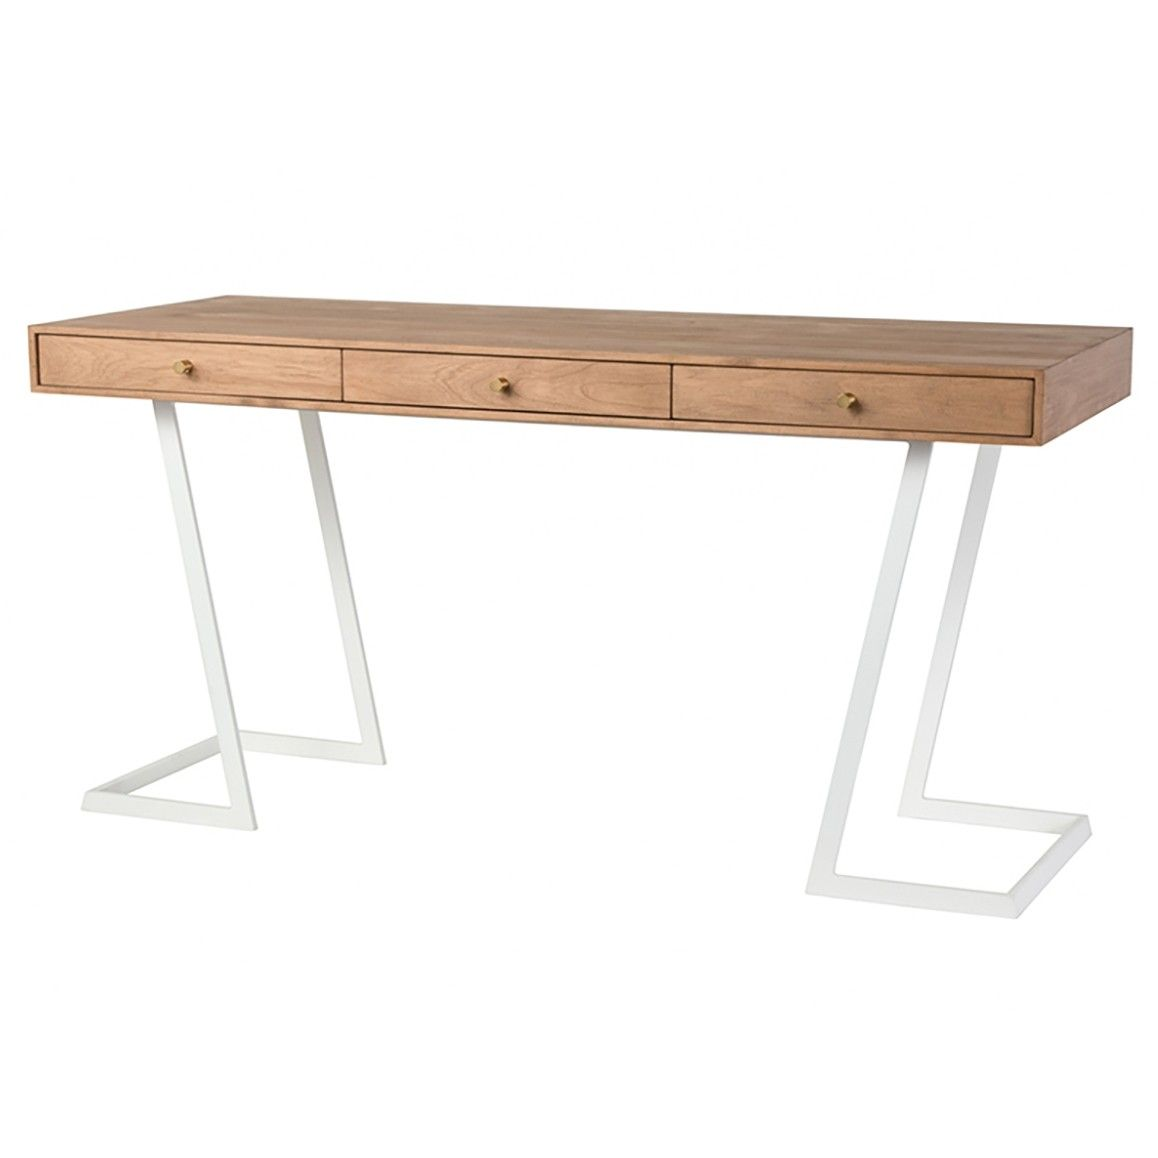 Redford House Furniture Emmett Writing Desk | New Arrivals | Furniture |  Candelabra, Inc.